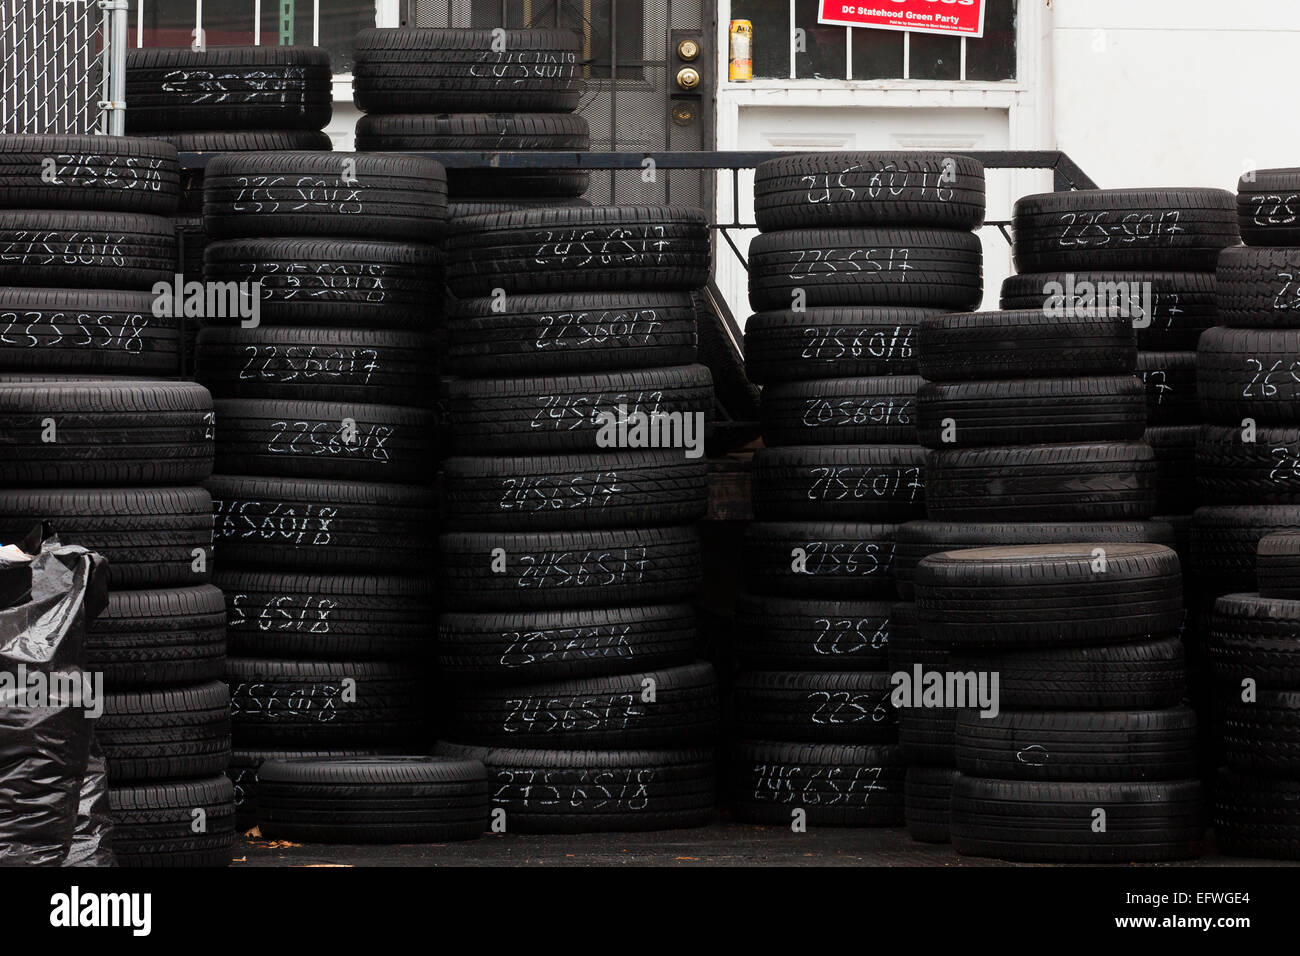 Stacked tires at tire store - USA - Stock Image